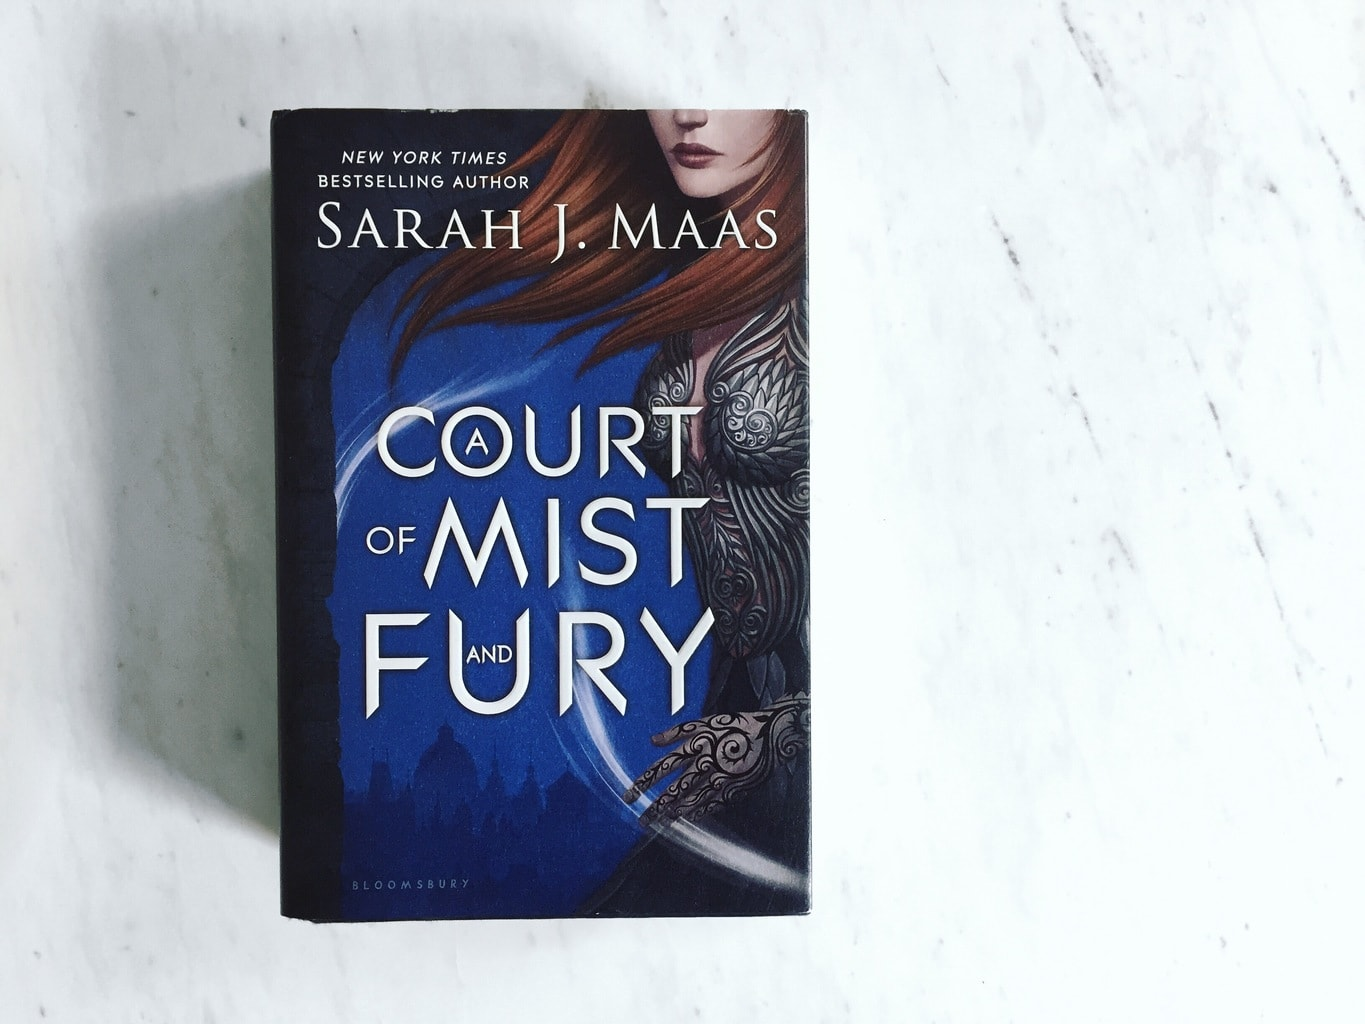 OMG: A Court of Mist and Fury was AMAZING!